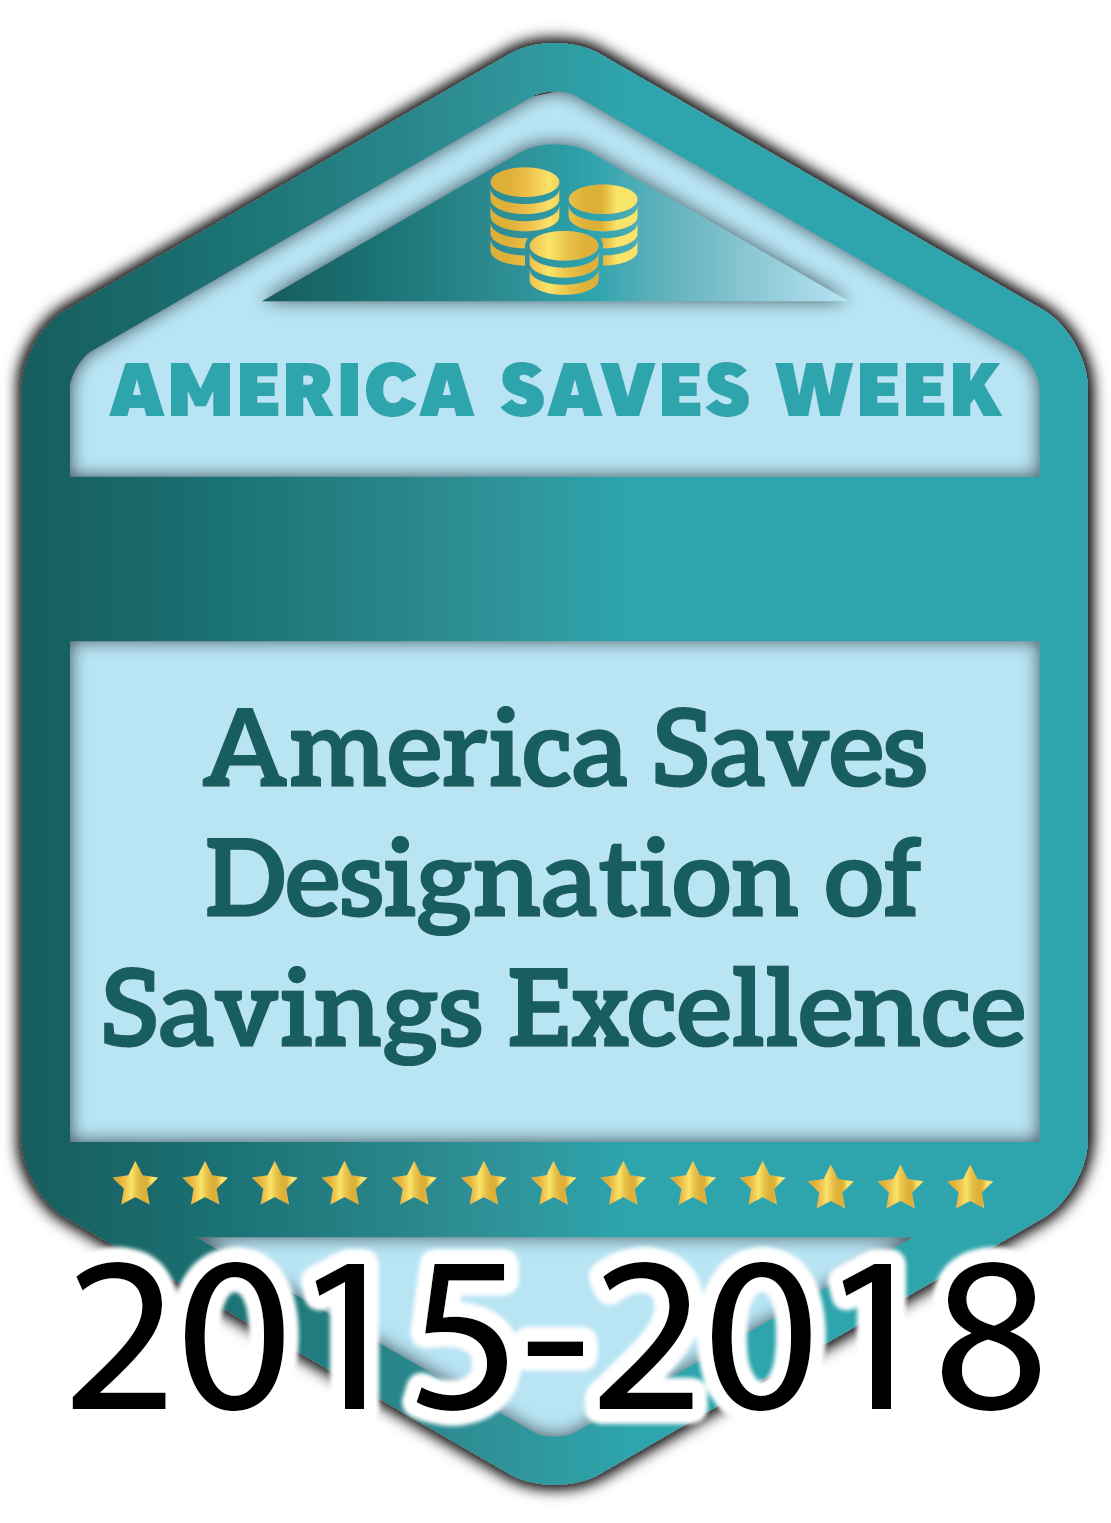 America Saves Designation of Savings Excellence